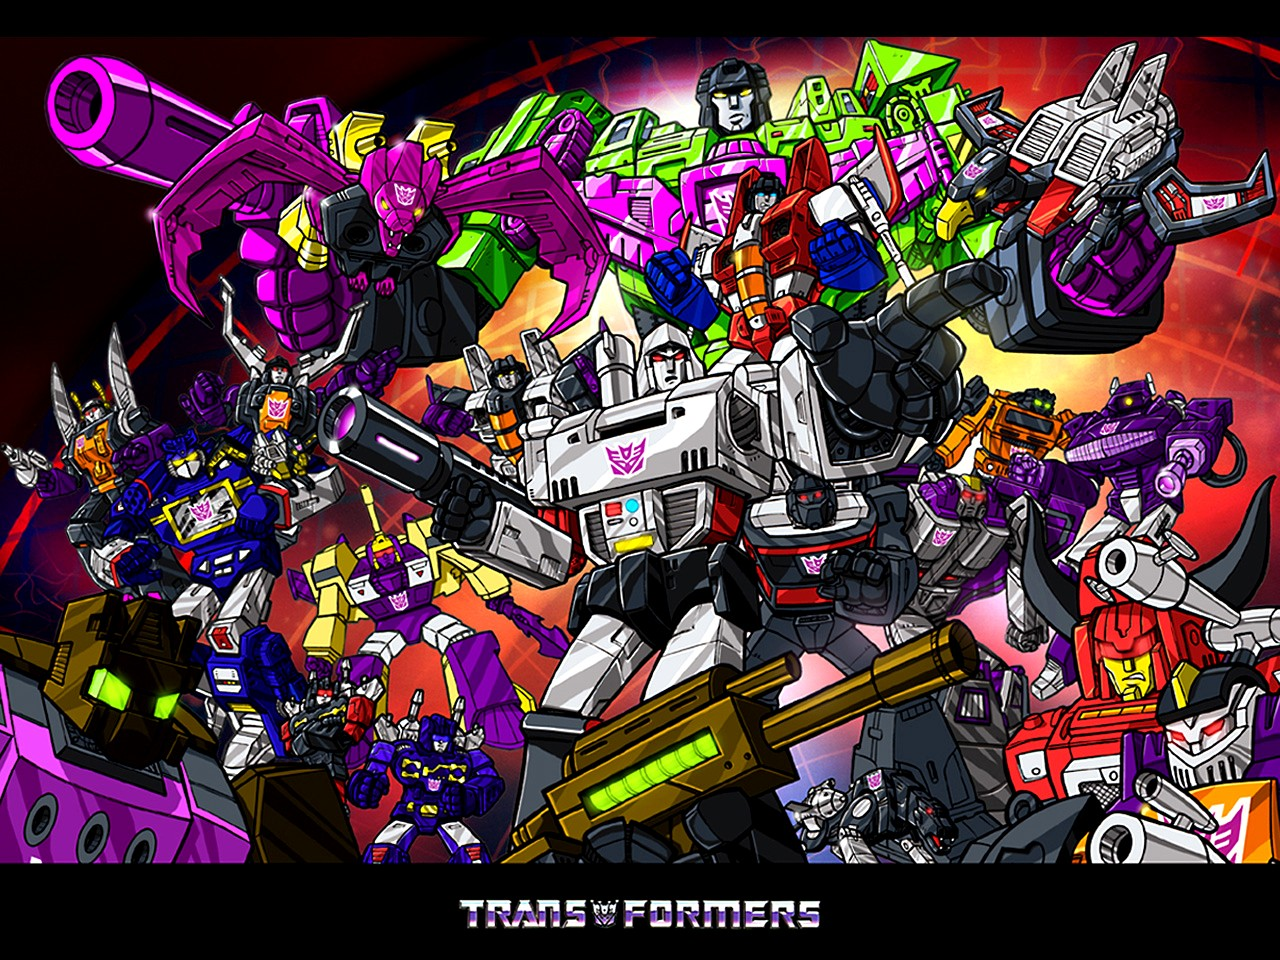 TRANSFORMERS G1 WALLPAPERS 1280x960